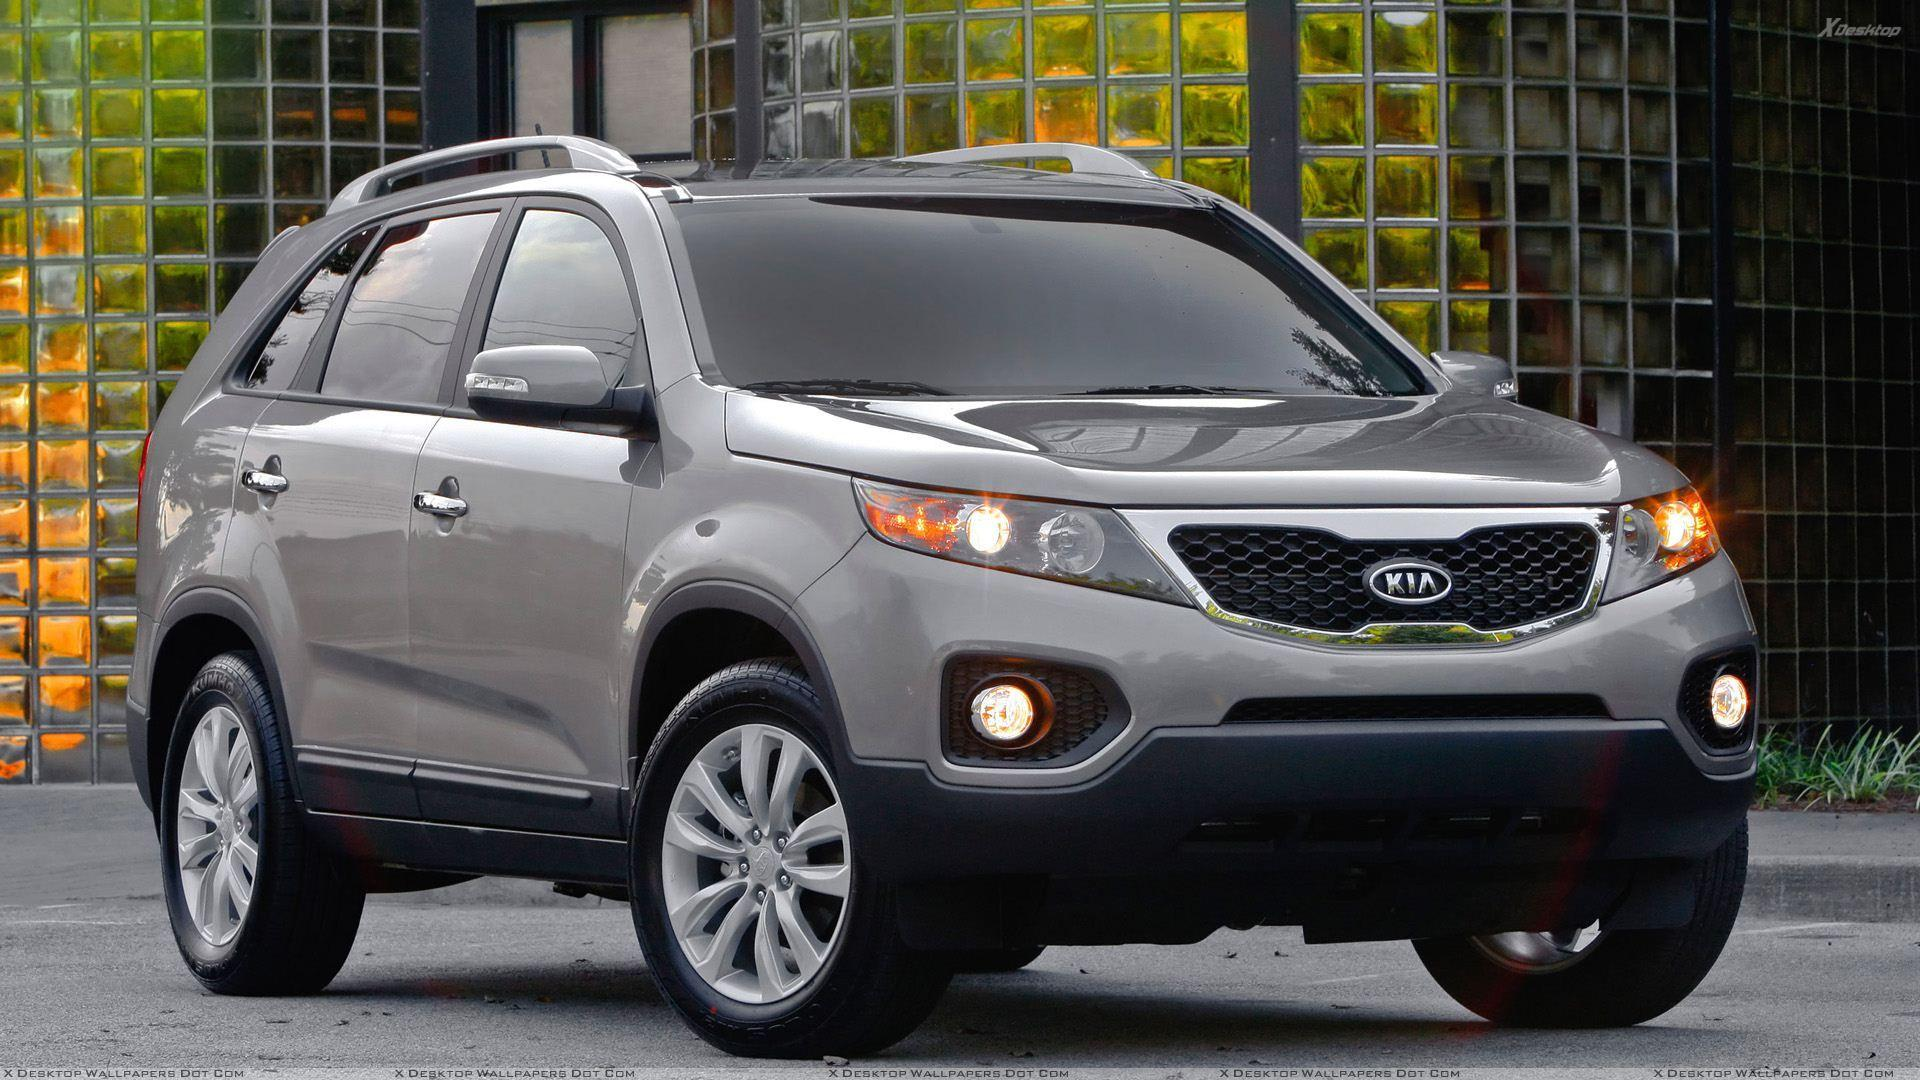 Kia Sorento 2011 In Grey Front Pose Wallpapers